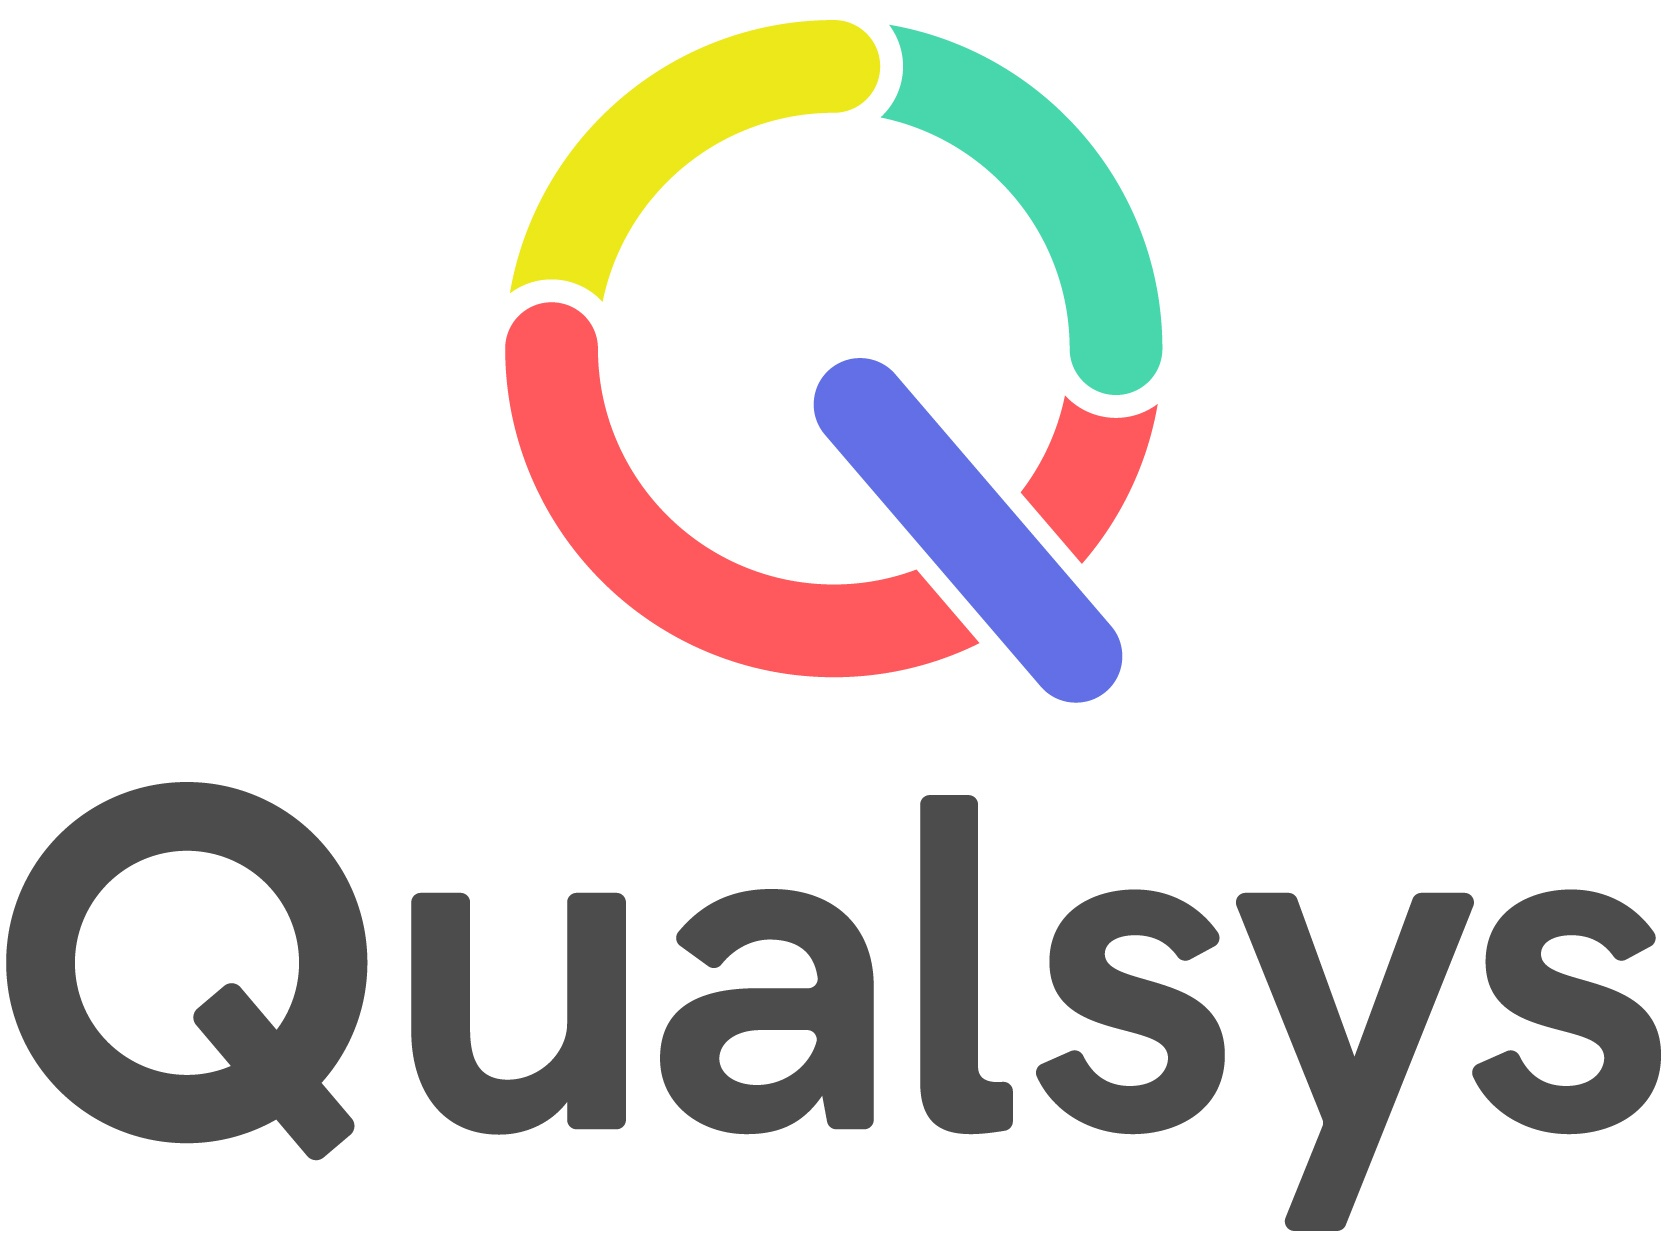 Qualsys_logo_rgb_Quality_Management_Solutions.jpg